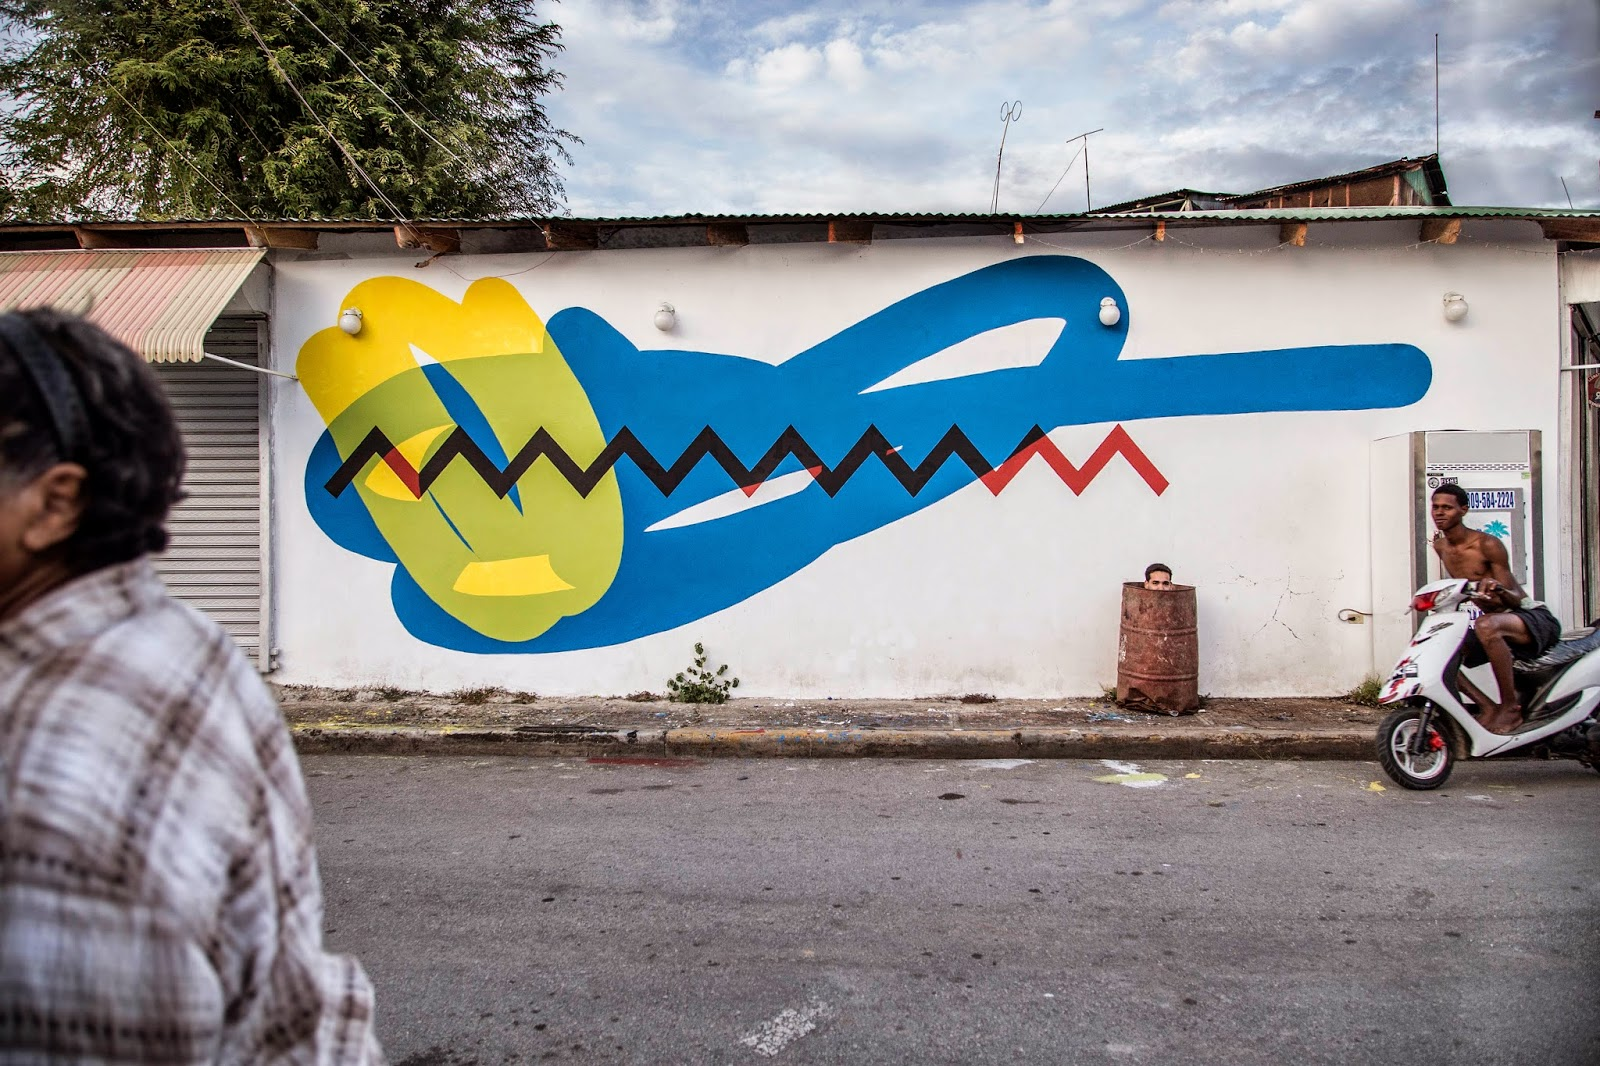 After Miami, Elian is now in Dominican Republic where he was invited by the Artesano Street Art Festival curated by Inoperable and Evoca1.